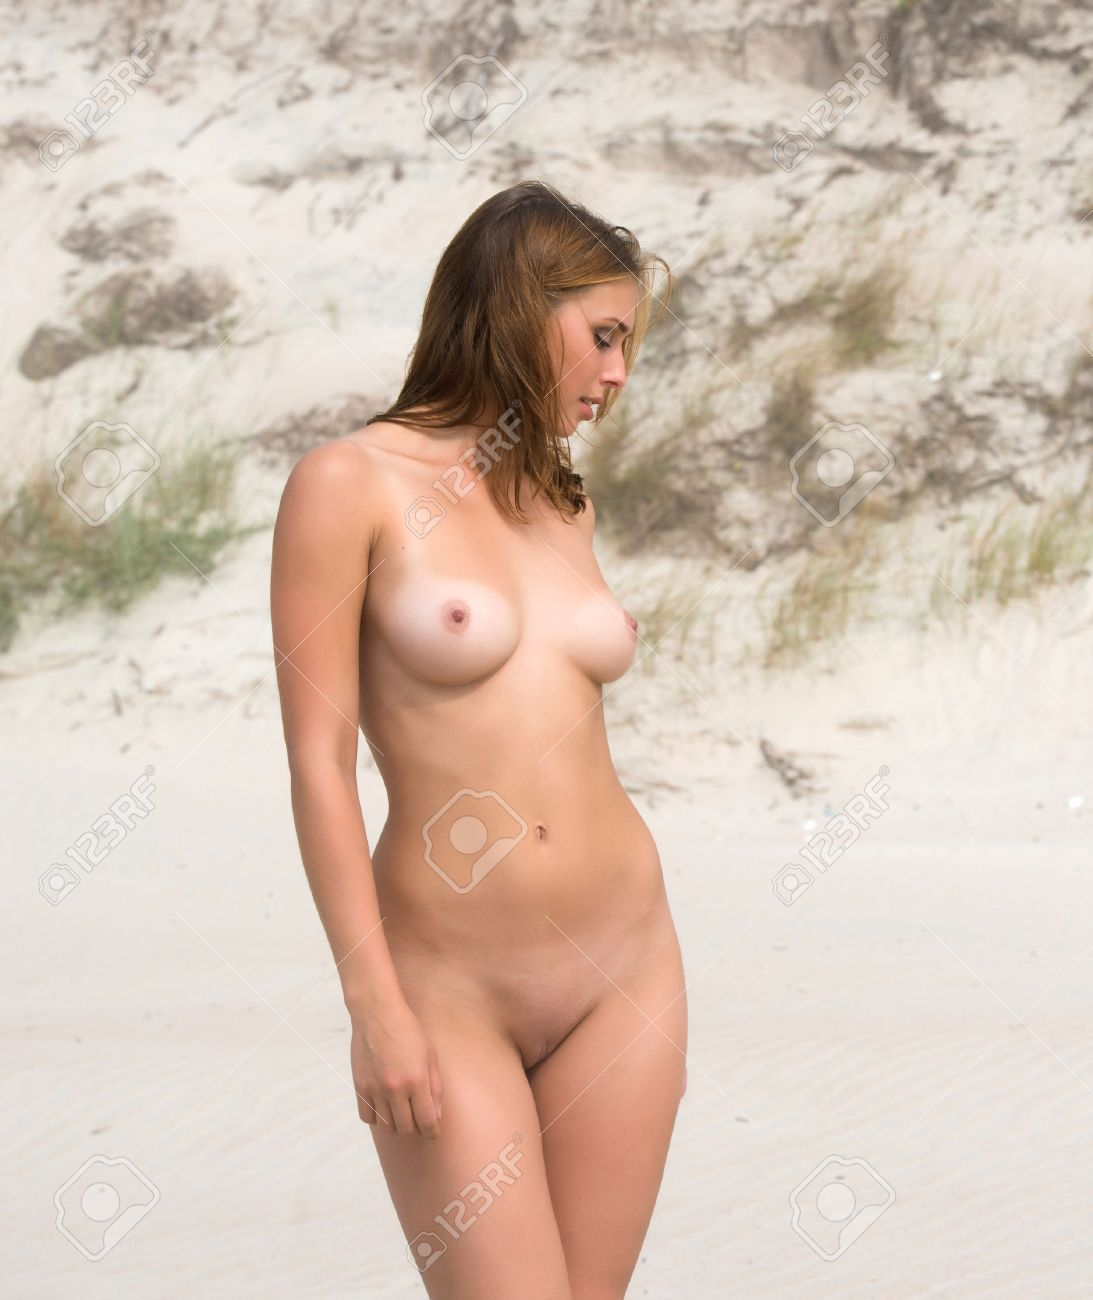 beautiful young naked posing on a foggy day stock photo, picture and